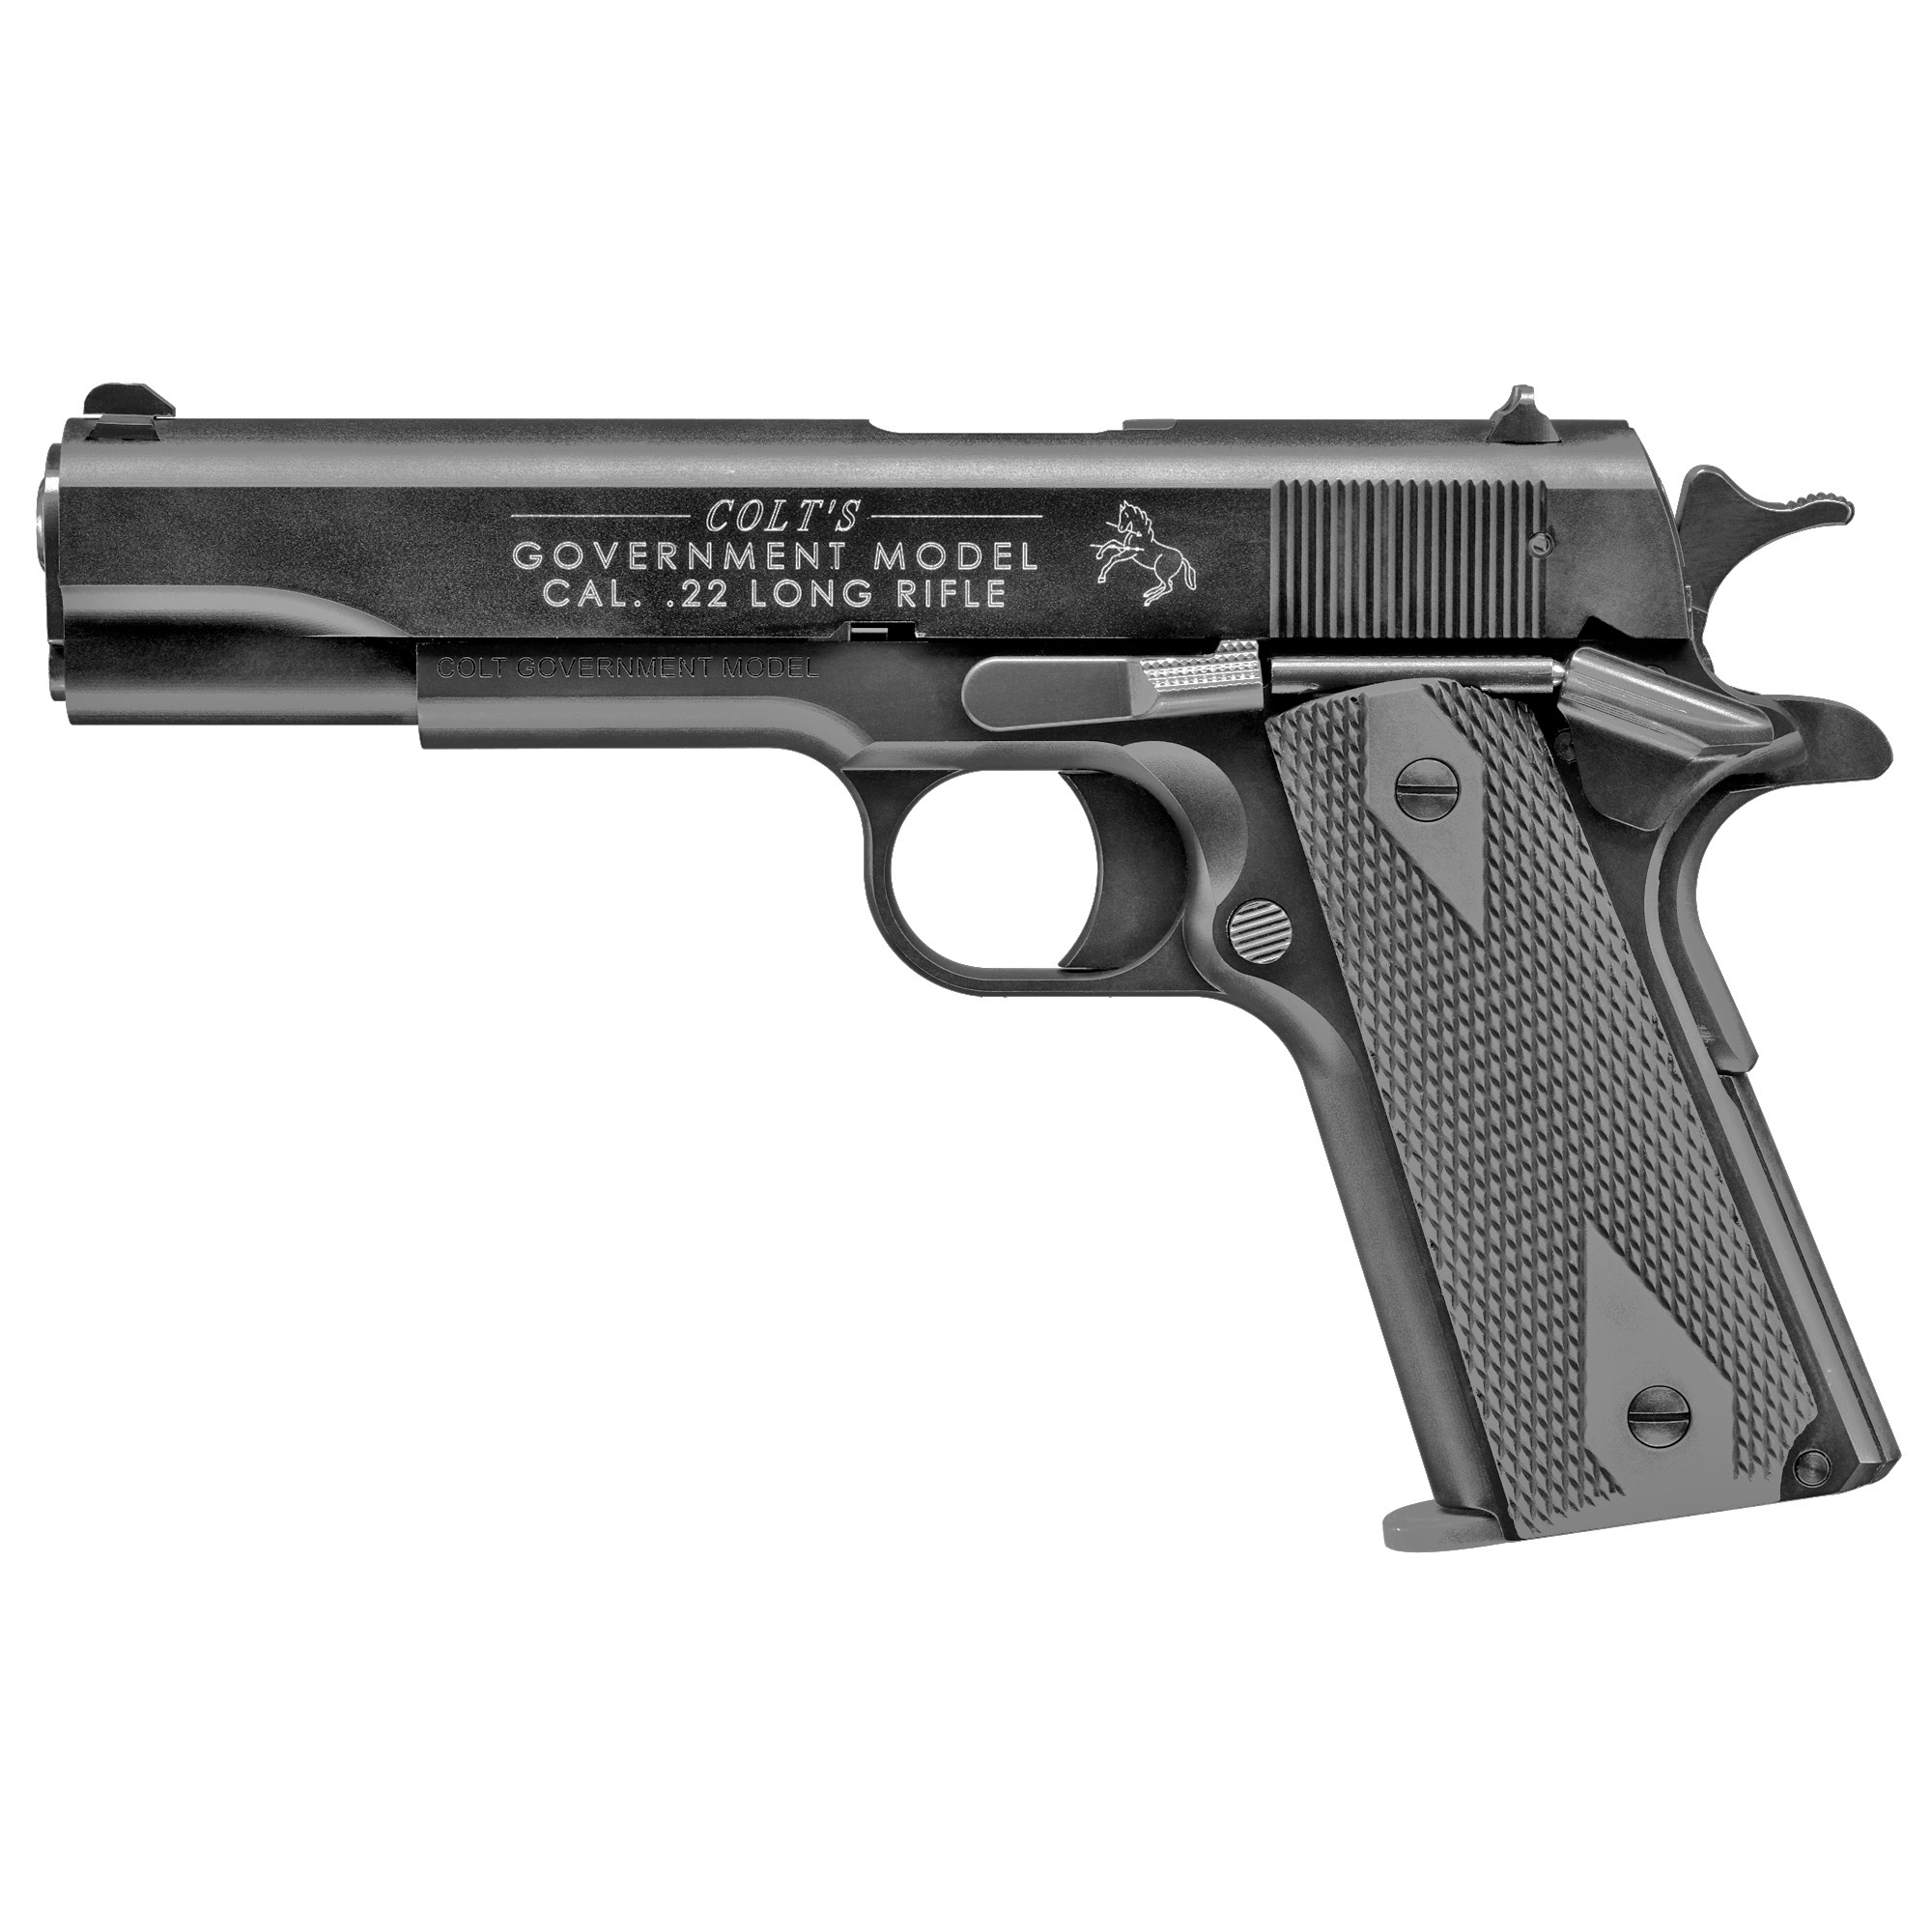 The Colt Government 1911 A1 is the classic configuration of the legendary Colt 1911 handgun carried by U.S. troops in several wars. The Colt Government 1911 A1 Semi-Automatic Pistol in .22 L.R. is manufactured exclusively by Walther under license from Colt. It is the only genuine Colt tactical rimfire replica available in the world.